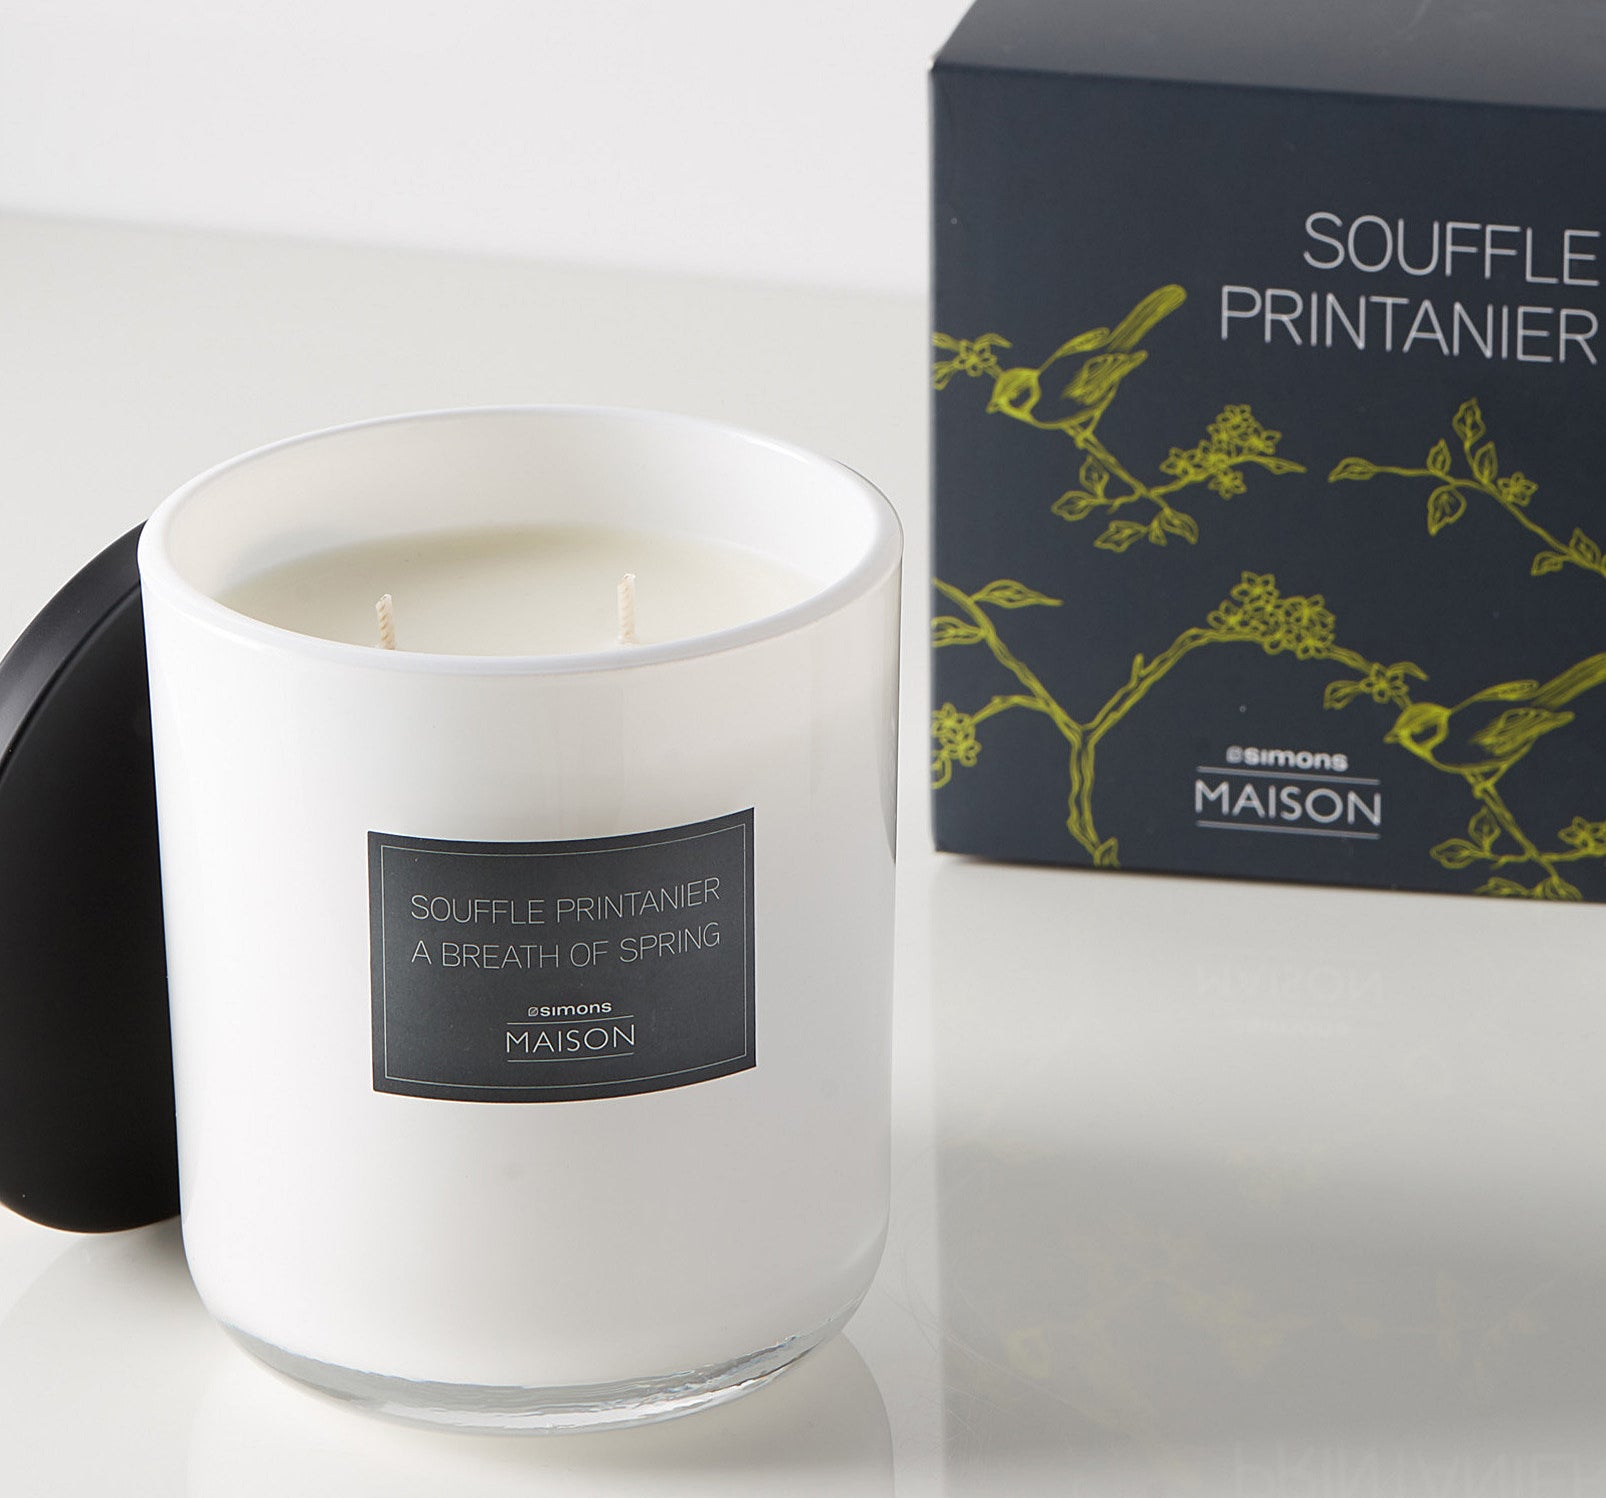 A candle that says a breath of spring